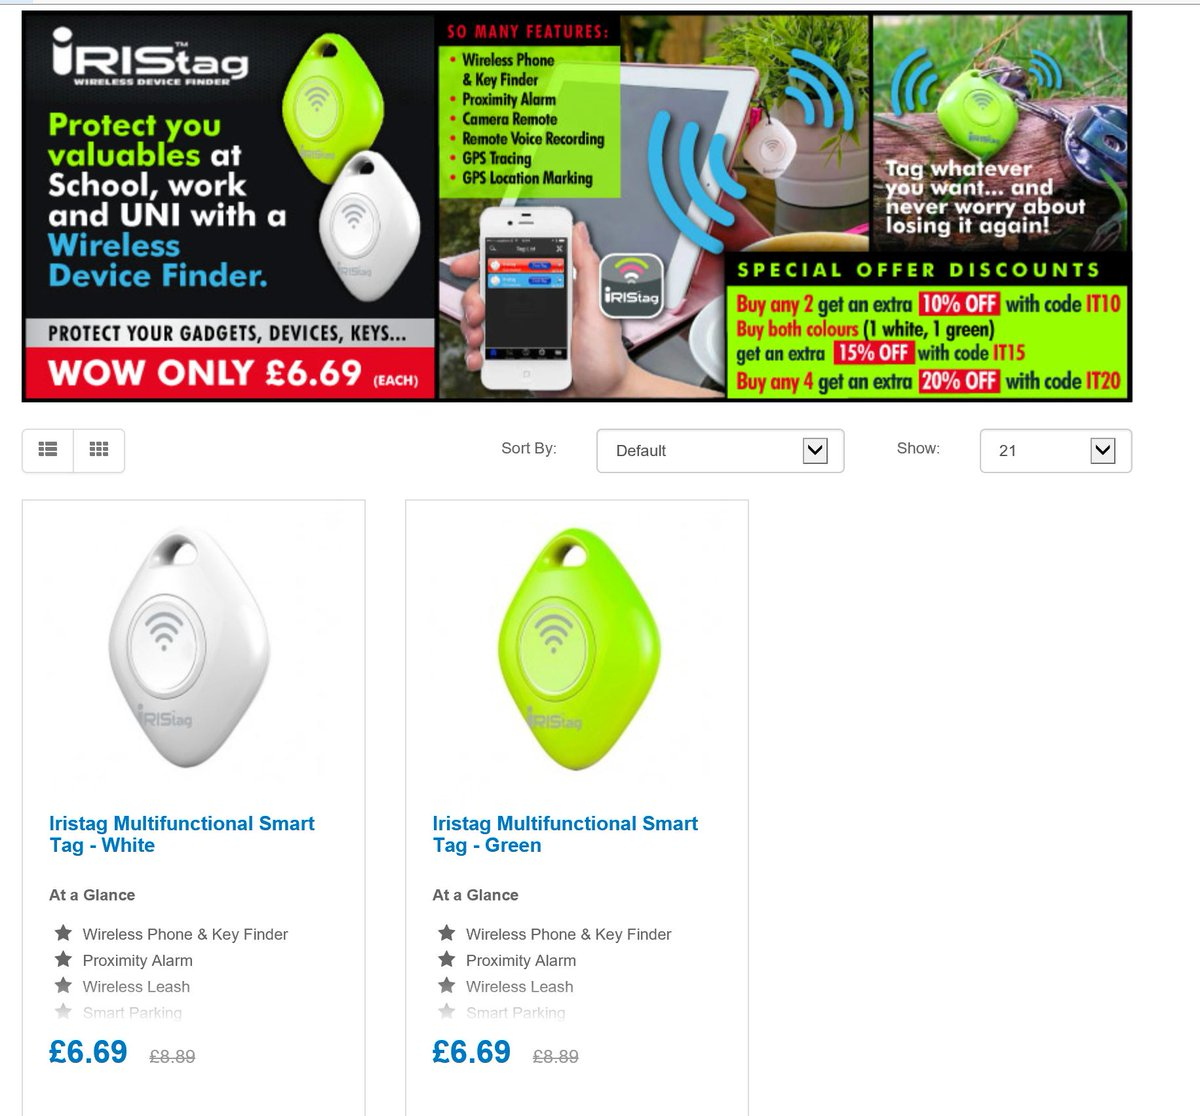 Protect your valuables at work, school &amp; Uni  http:// ow.ly/hV7o30eWCZR  &nbsp;   #RT #Follow #Win  share  #MultiBuy any 2 10% Extra off, any 4 20% off <br>http://pic.twitter.com/zNVY0SHY9Z